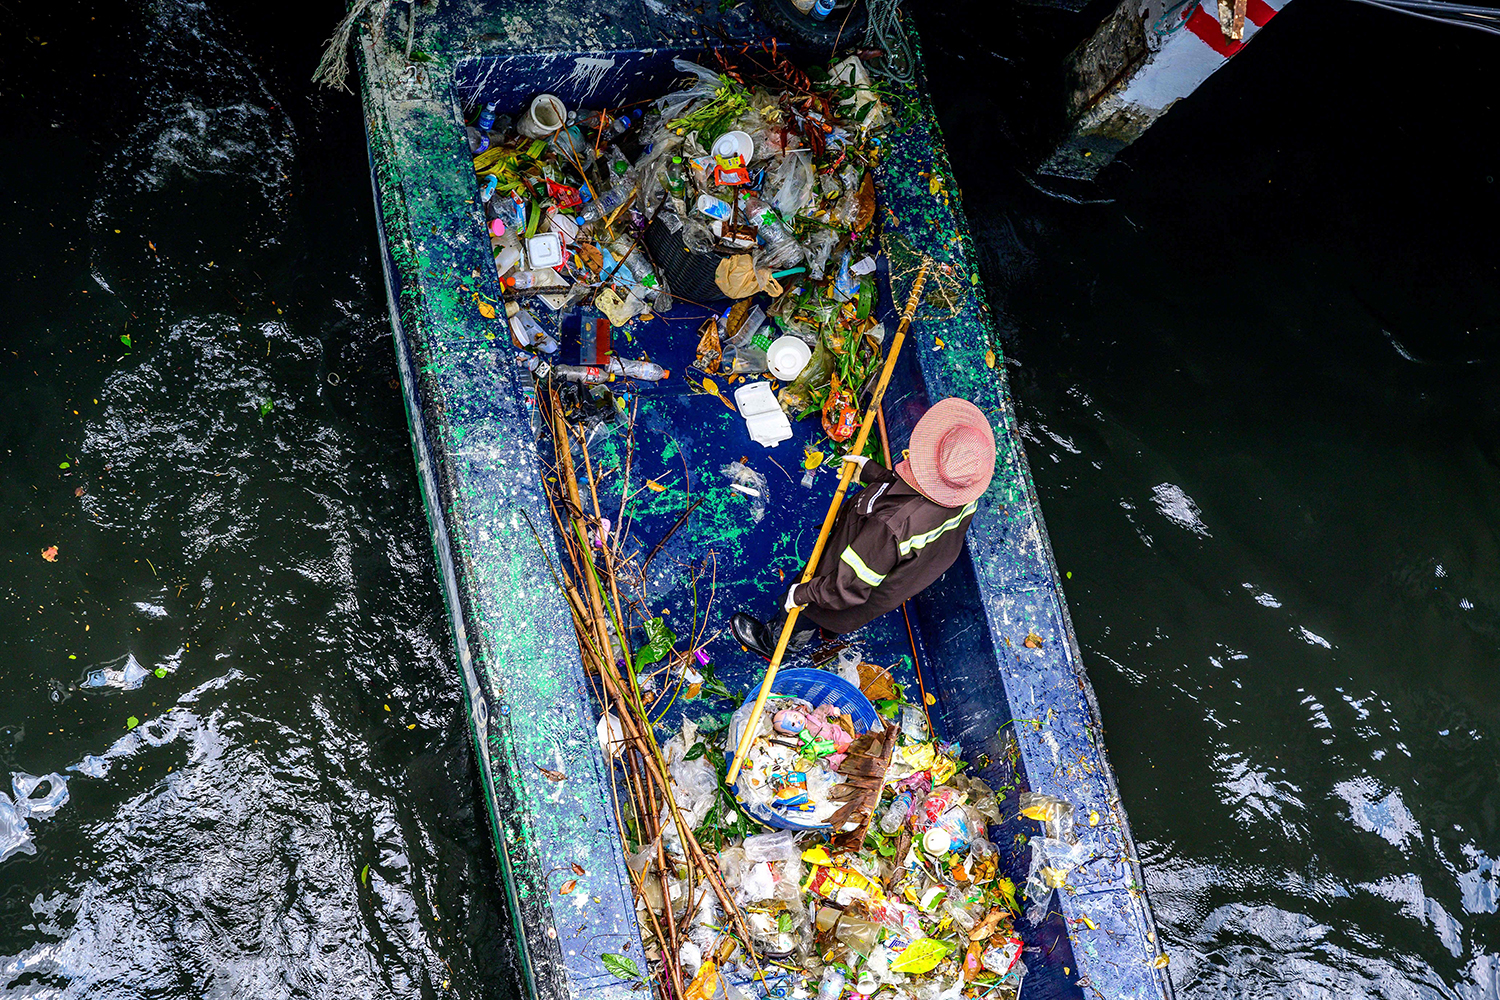 A municipal worker uses a net to pick out garbage from a canal in Bangkok on April 16. MLADEN ANTONOV/AFP via Getty Images